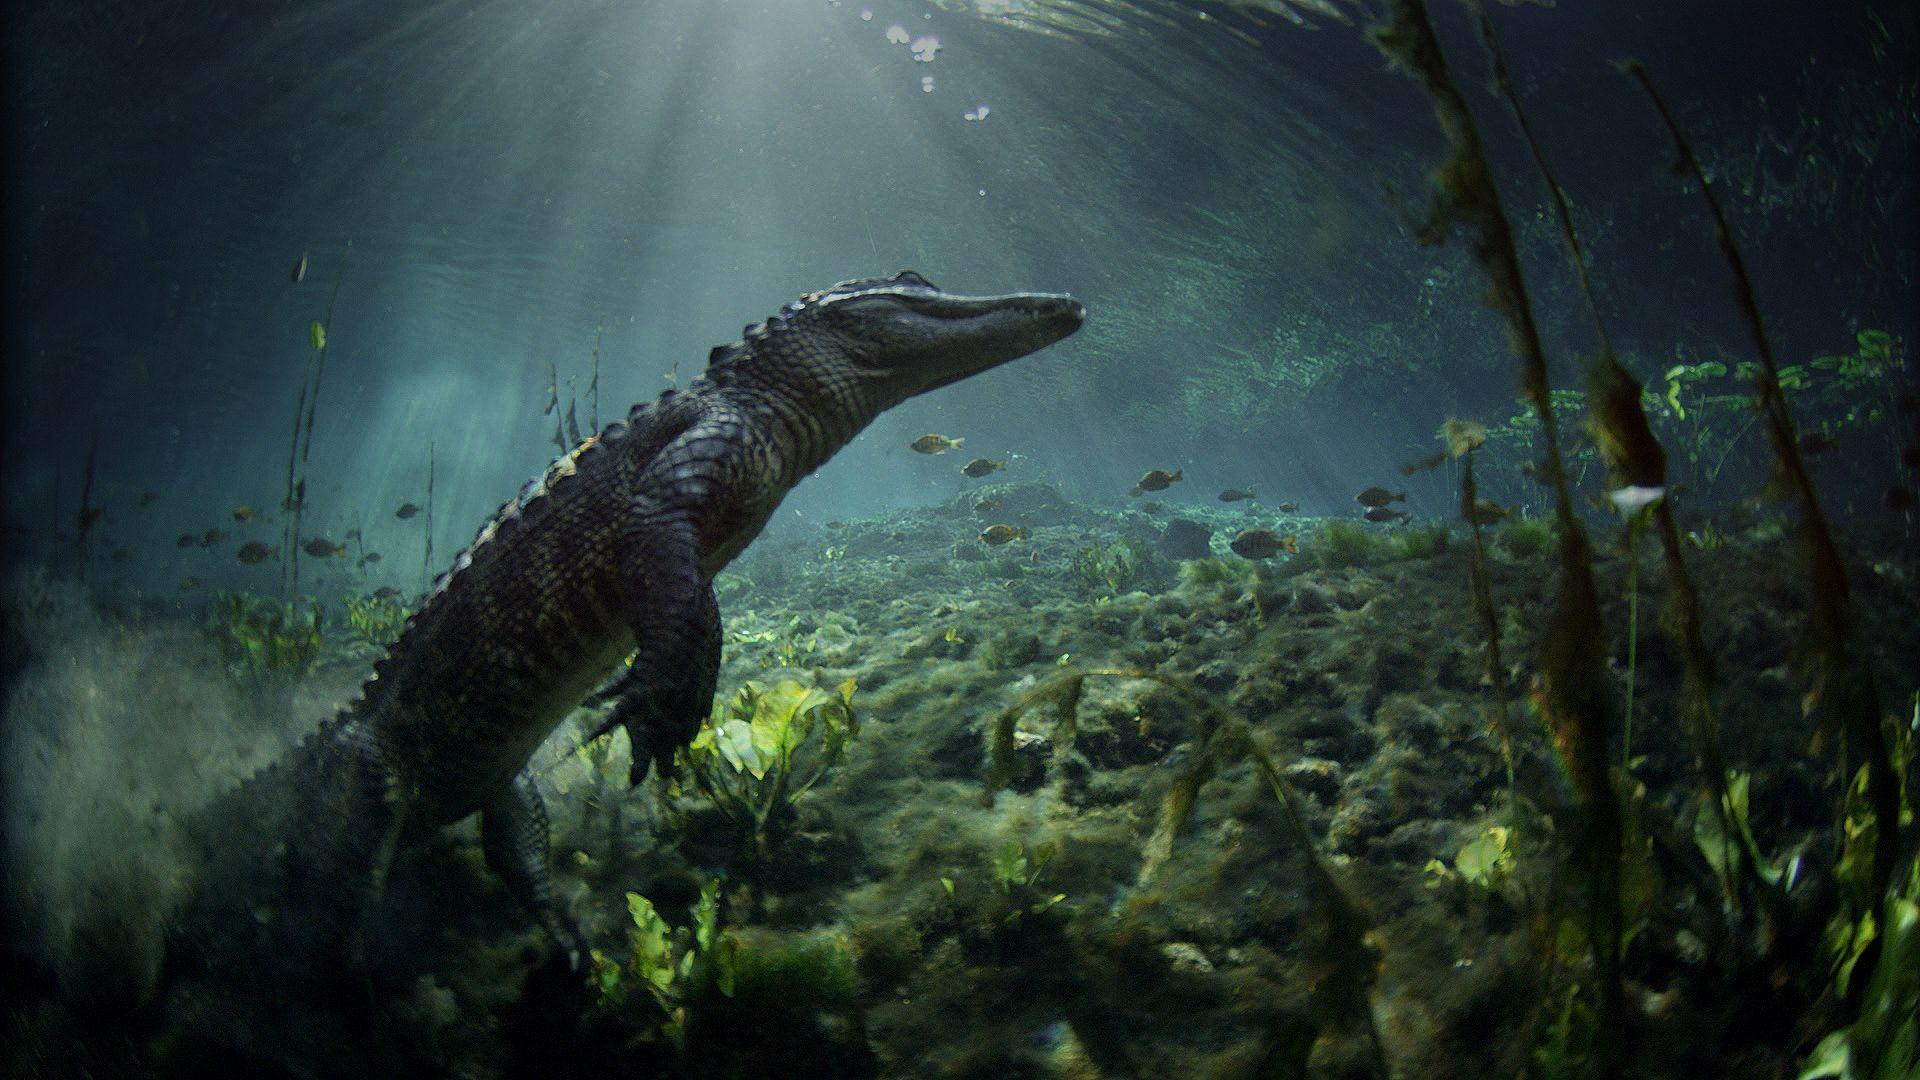 Meet the Residents of Everglades National Park